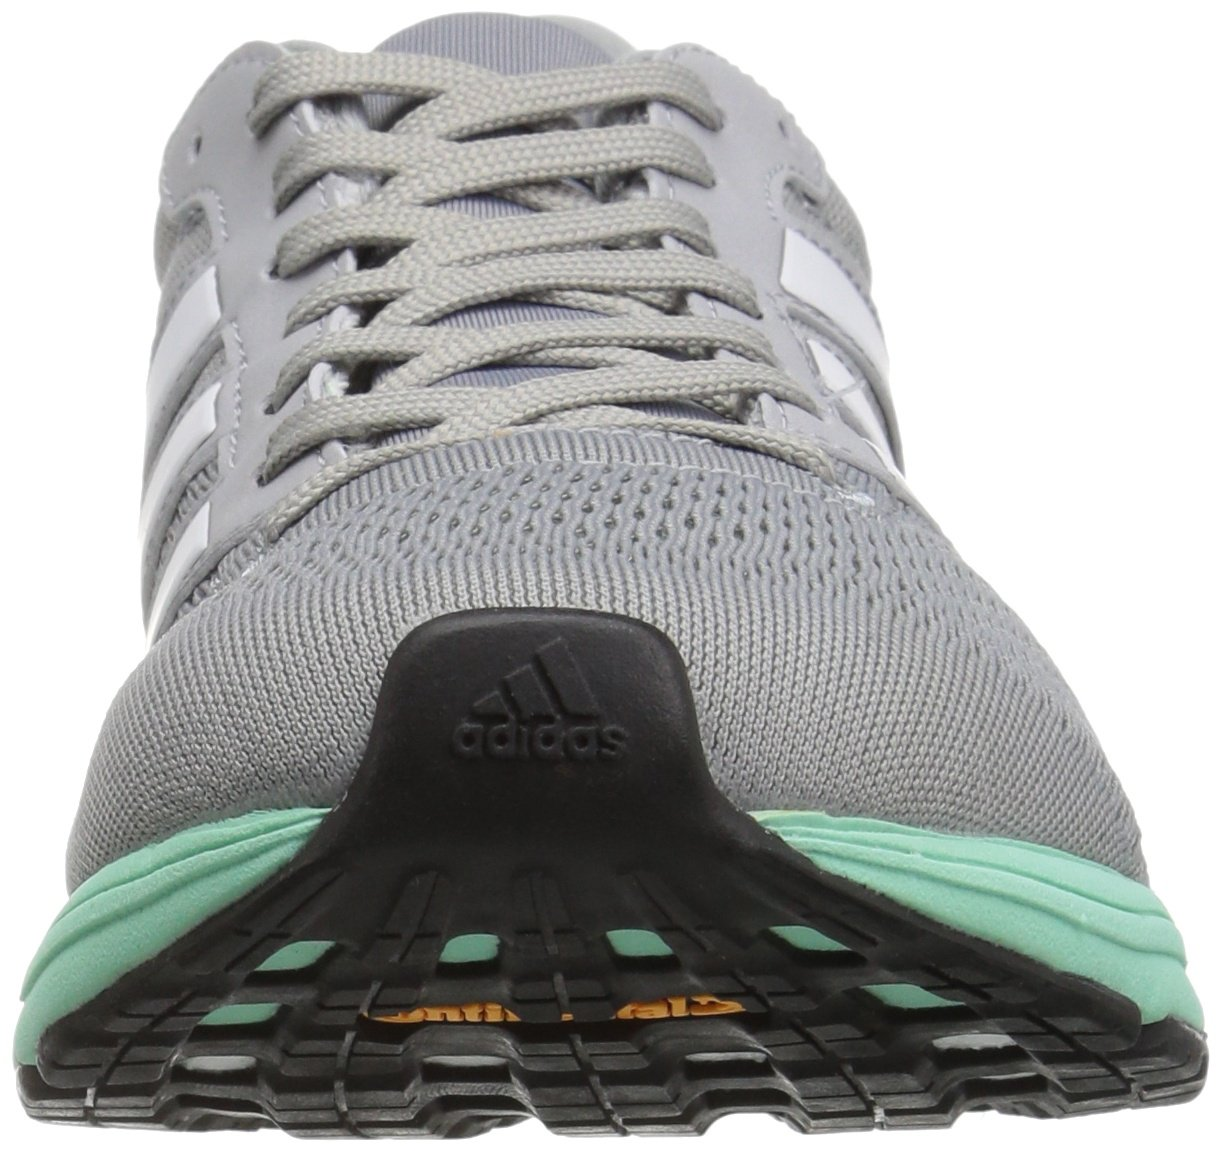 adidas Women's Adizero Boston 6 W Running Shoe B01K513JQ0 9.5 B(M) US|Mid Grey White/Easy Orange S